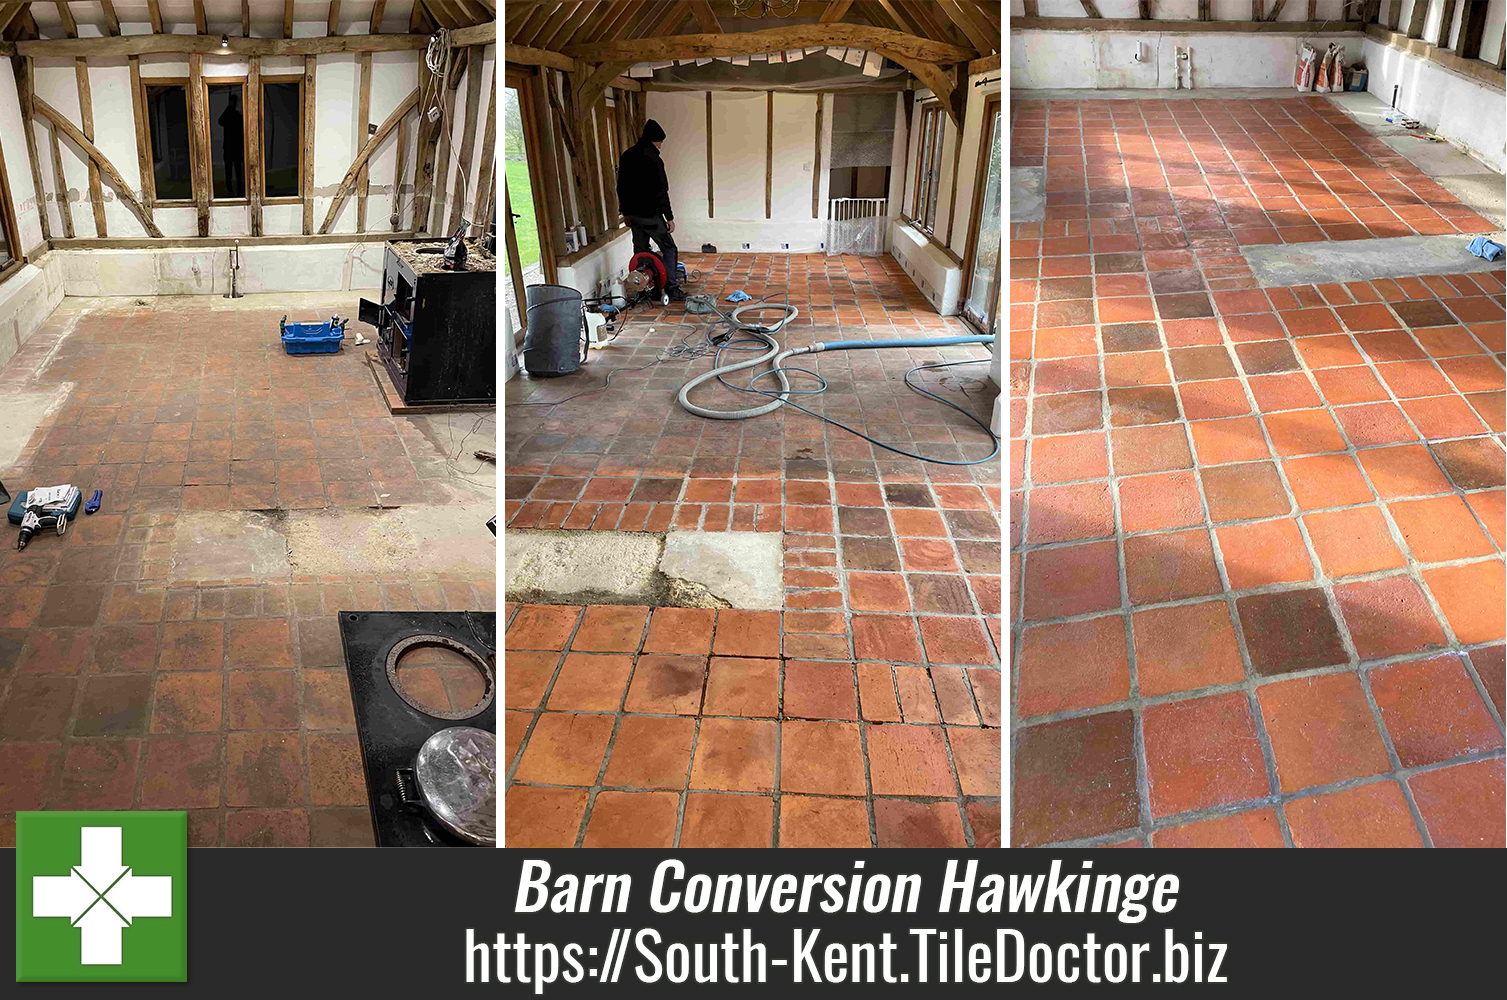 Restoring Quarry and Terracotta Floor Tiles at a Barn Conversion in Hawkinge